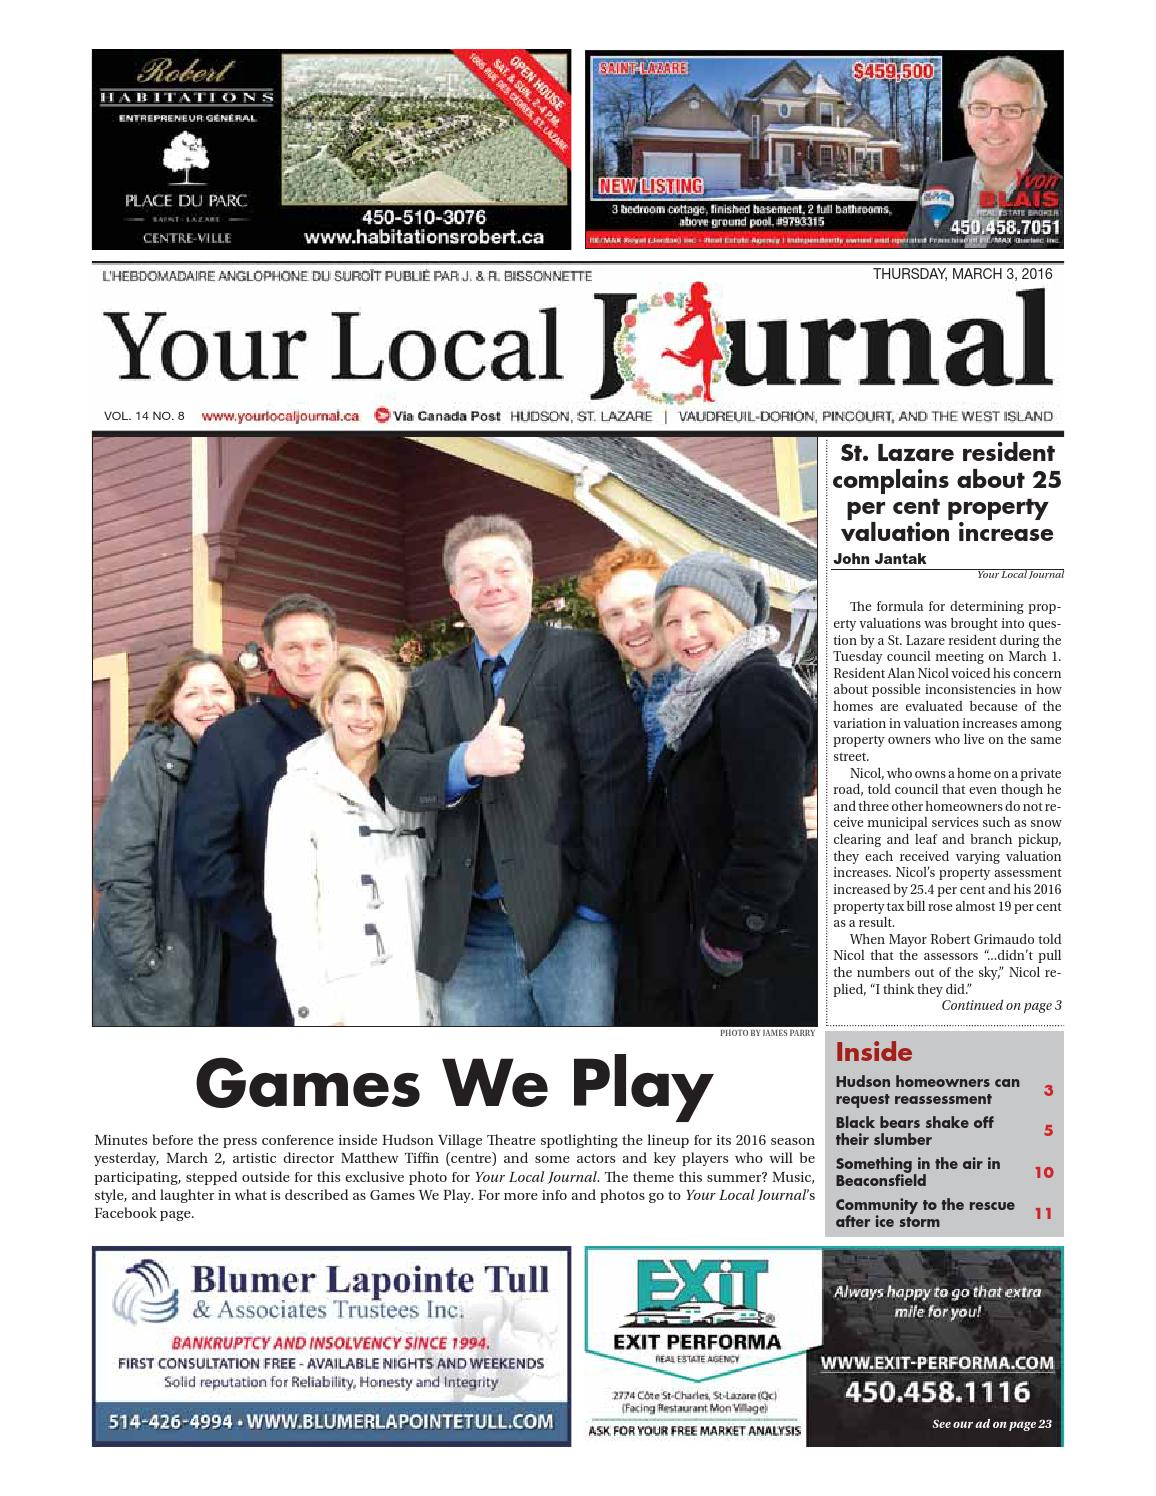 Your Local Journal - March 3rd, 2016 by Your Local Journal